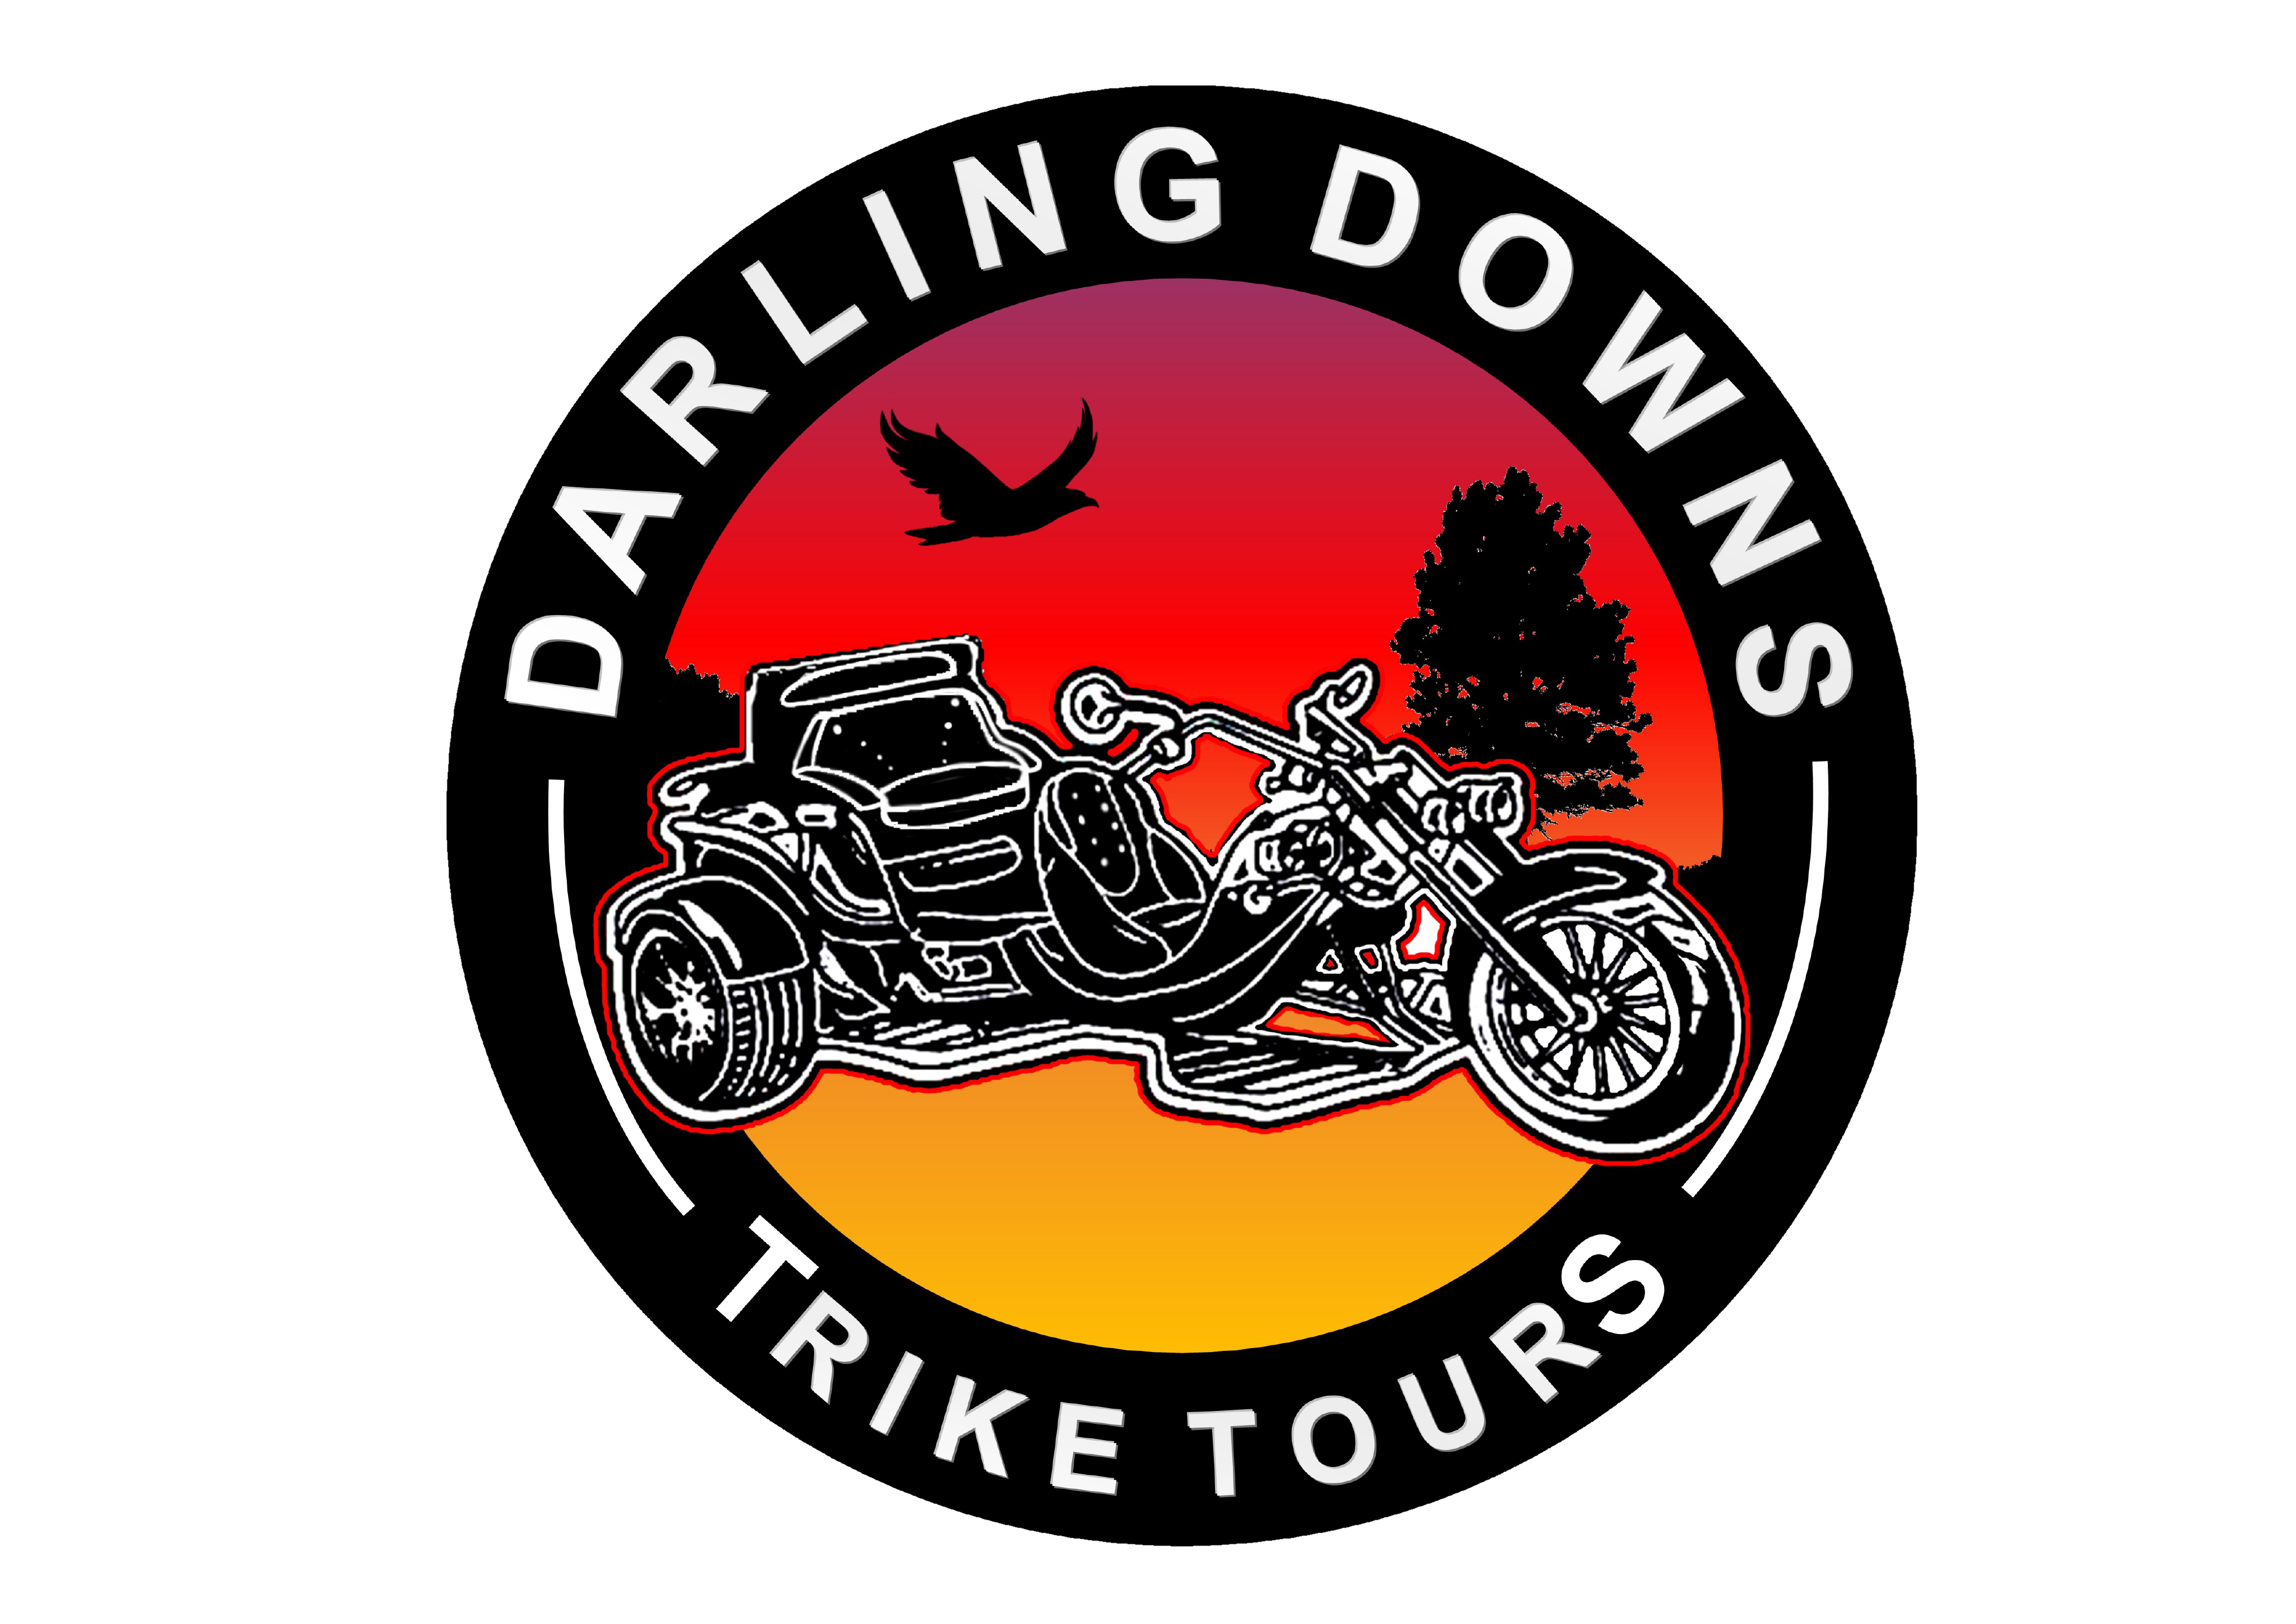 Darling Downs Trike Tours